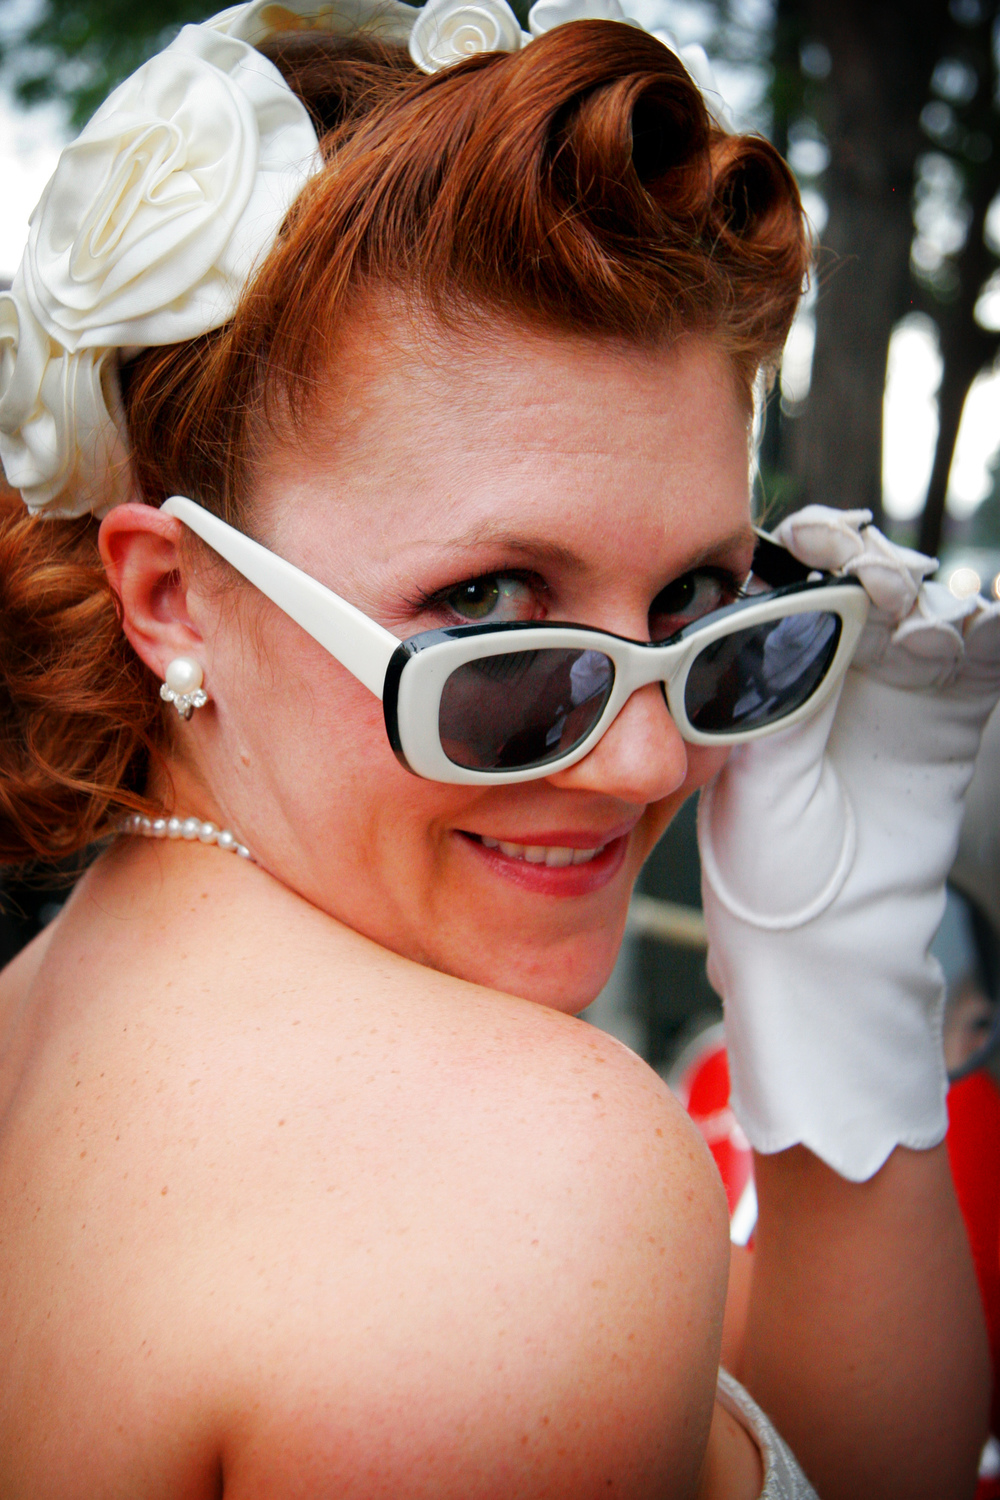 Highlands_Vespa_Denver_Wedding_033.JPG